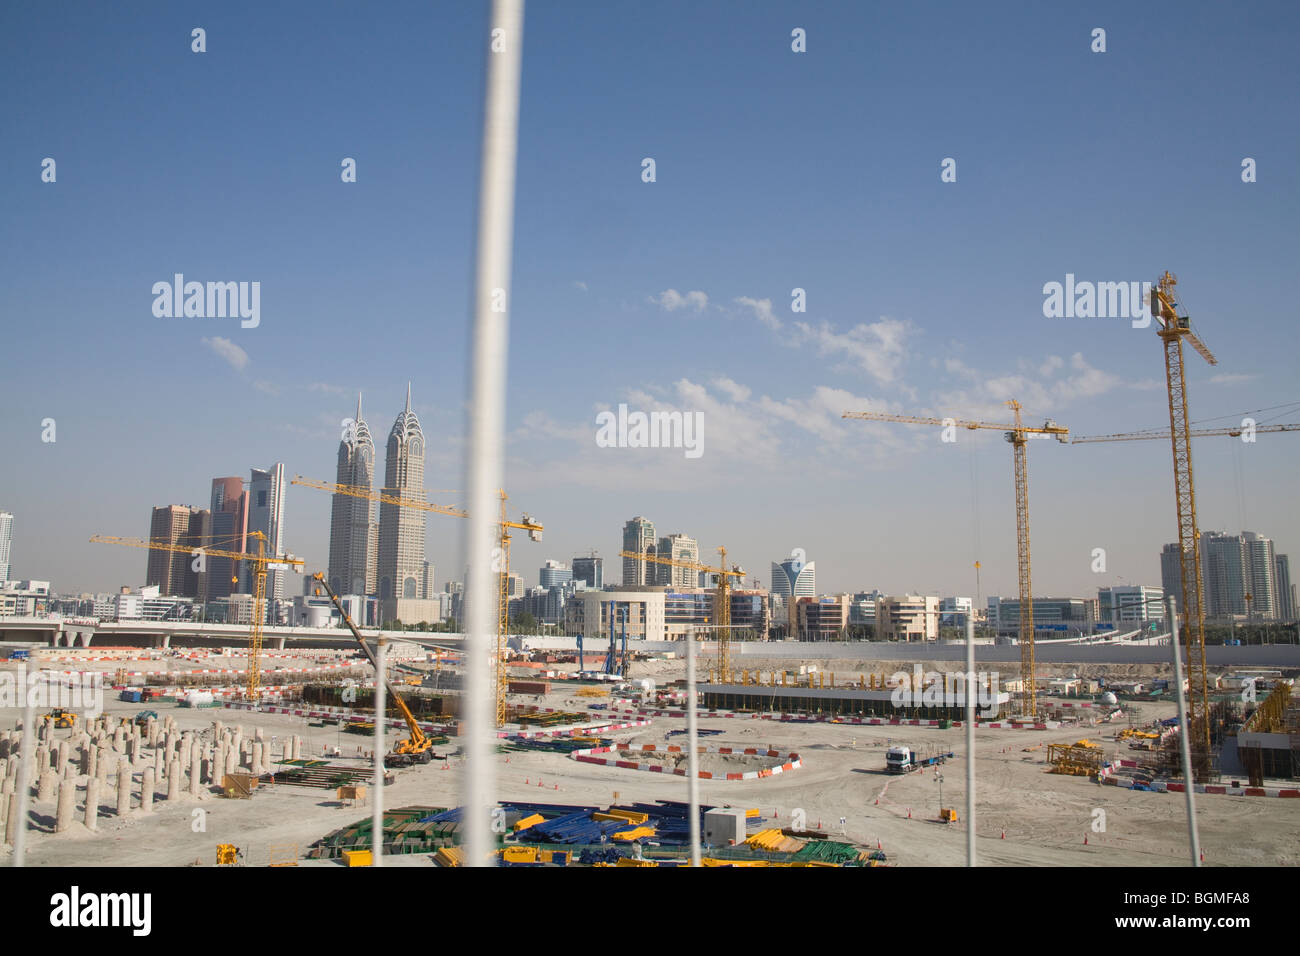 Dubai United Arab Emirates Construction work has been severely curtailed during the current economic crisis - Stock Image